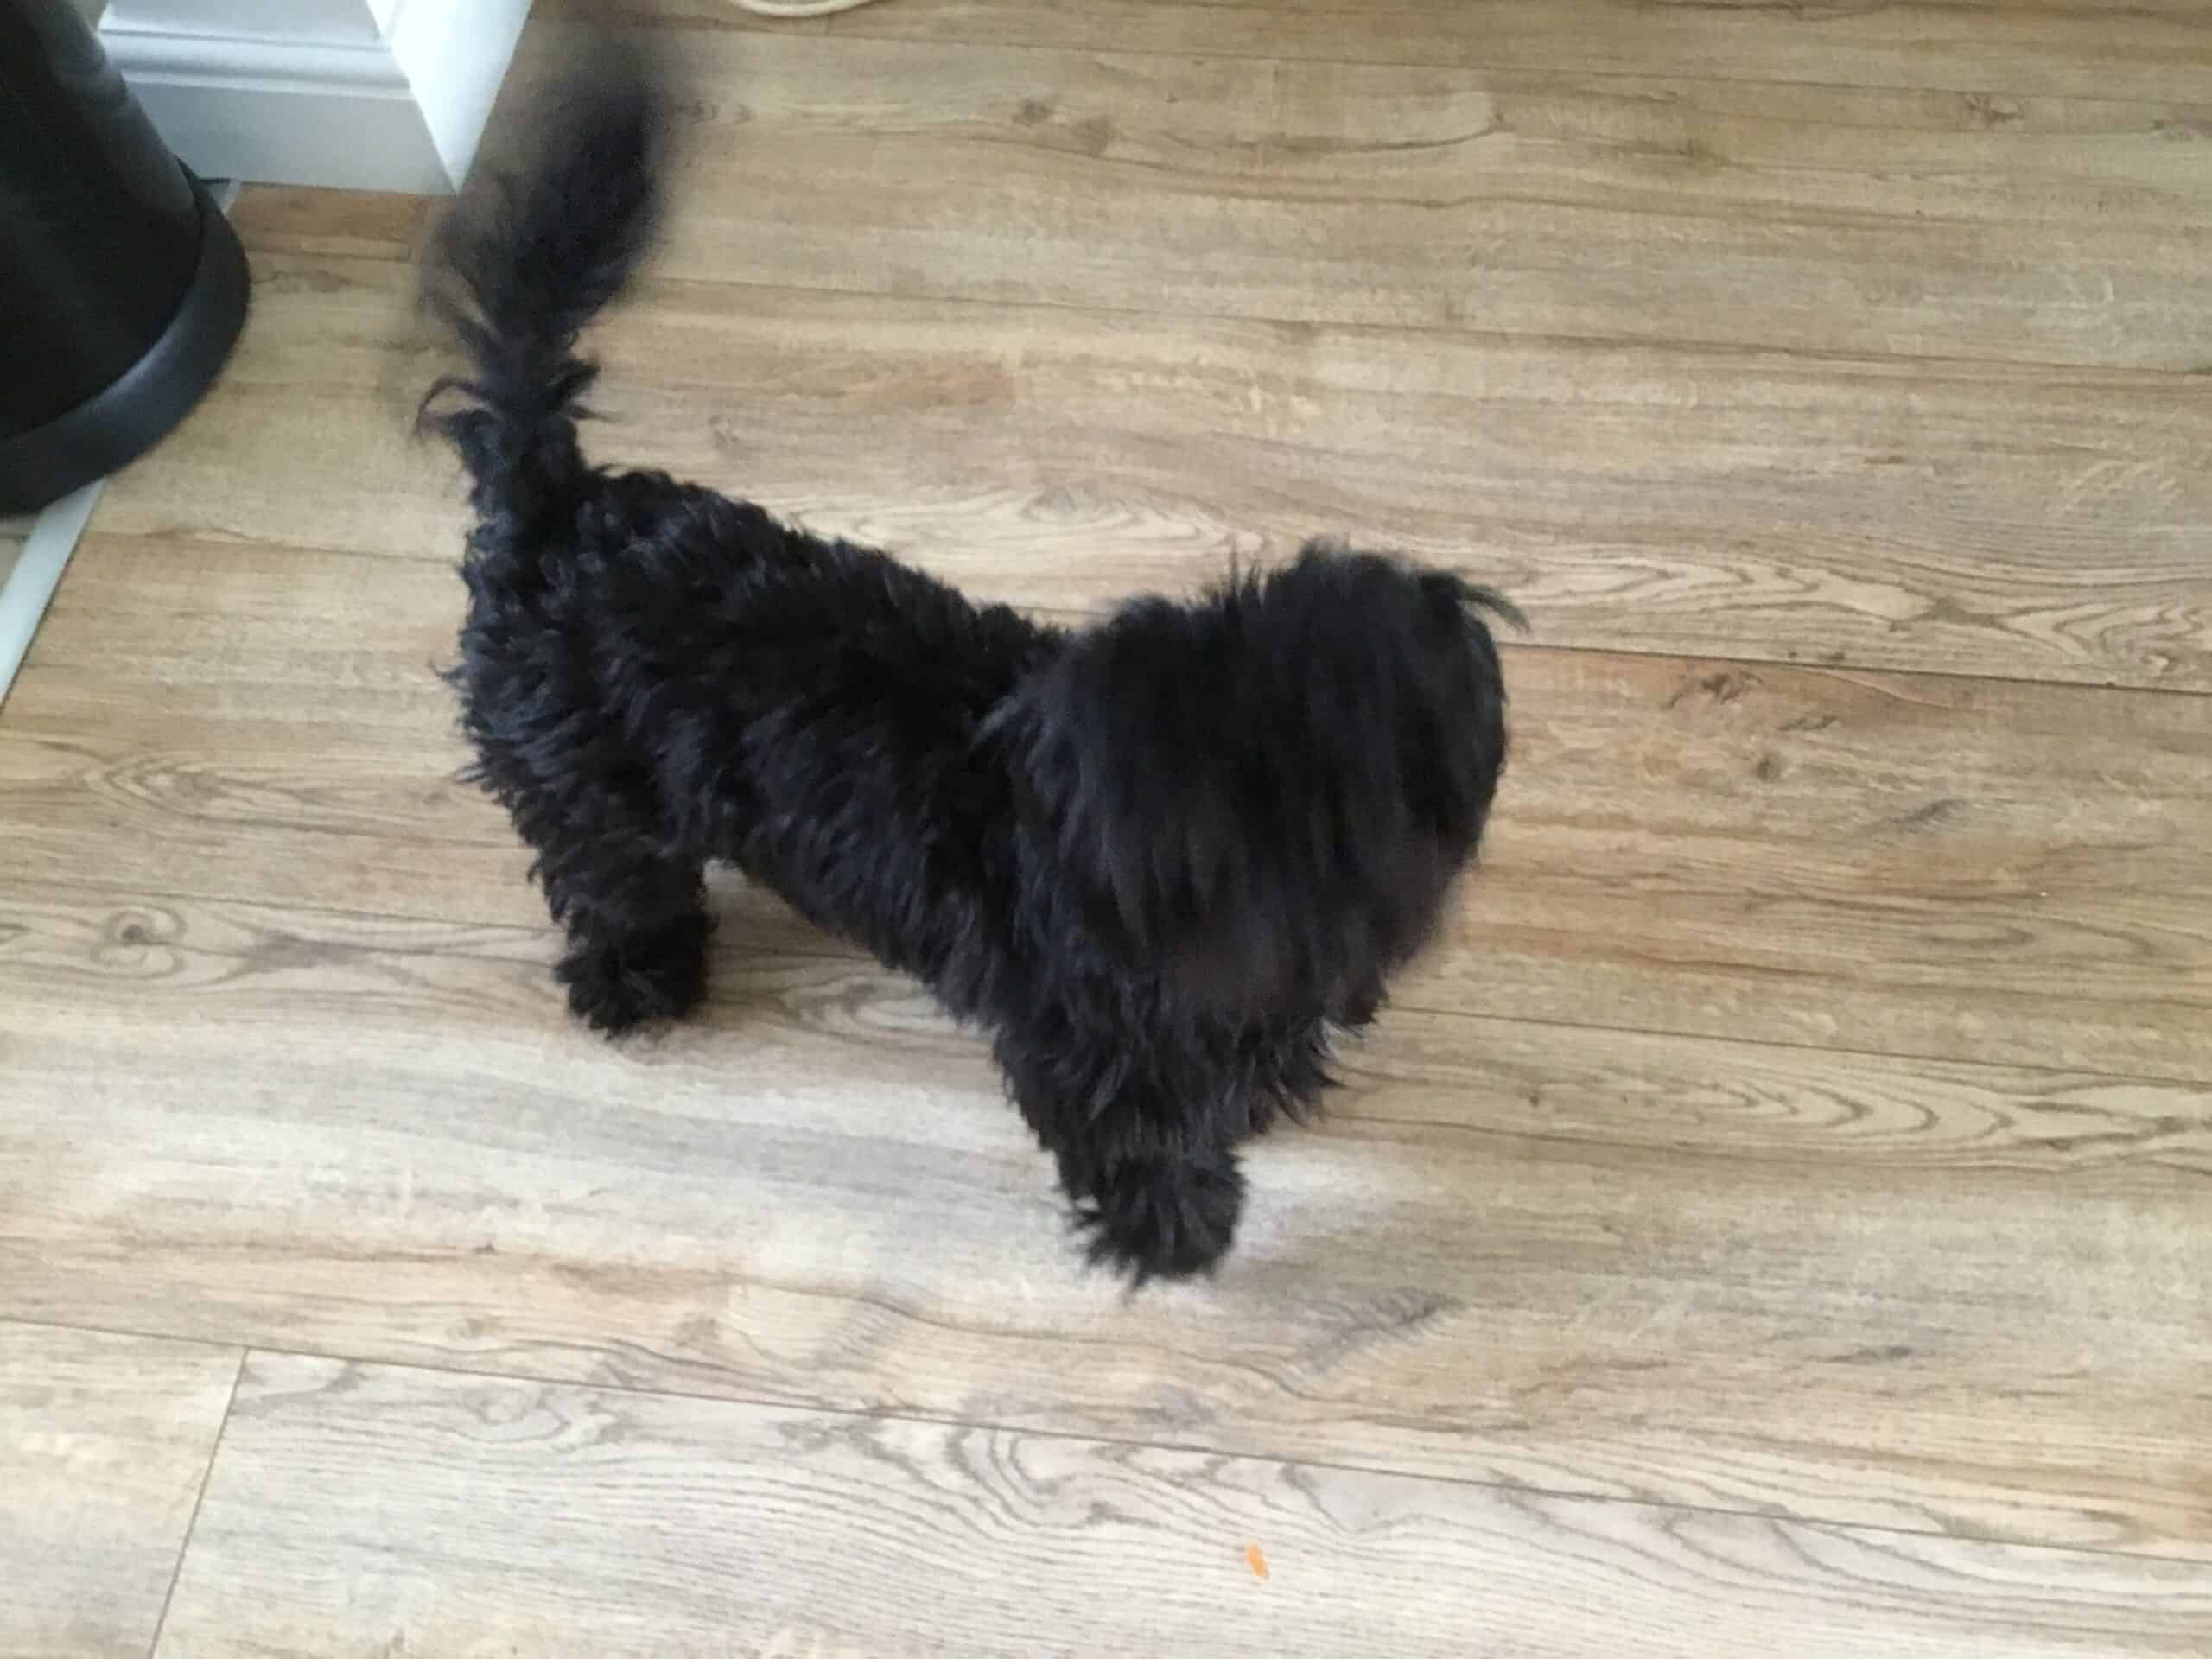 Lhasa apso/shih tzu puppy for sale. Seven months